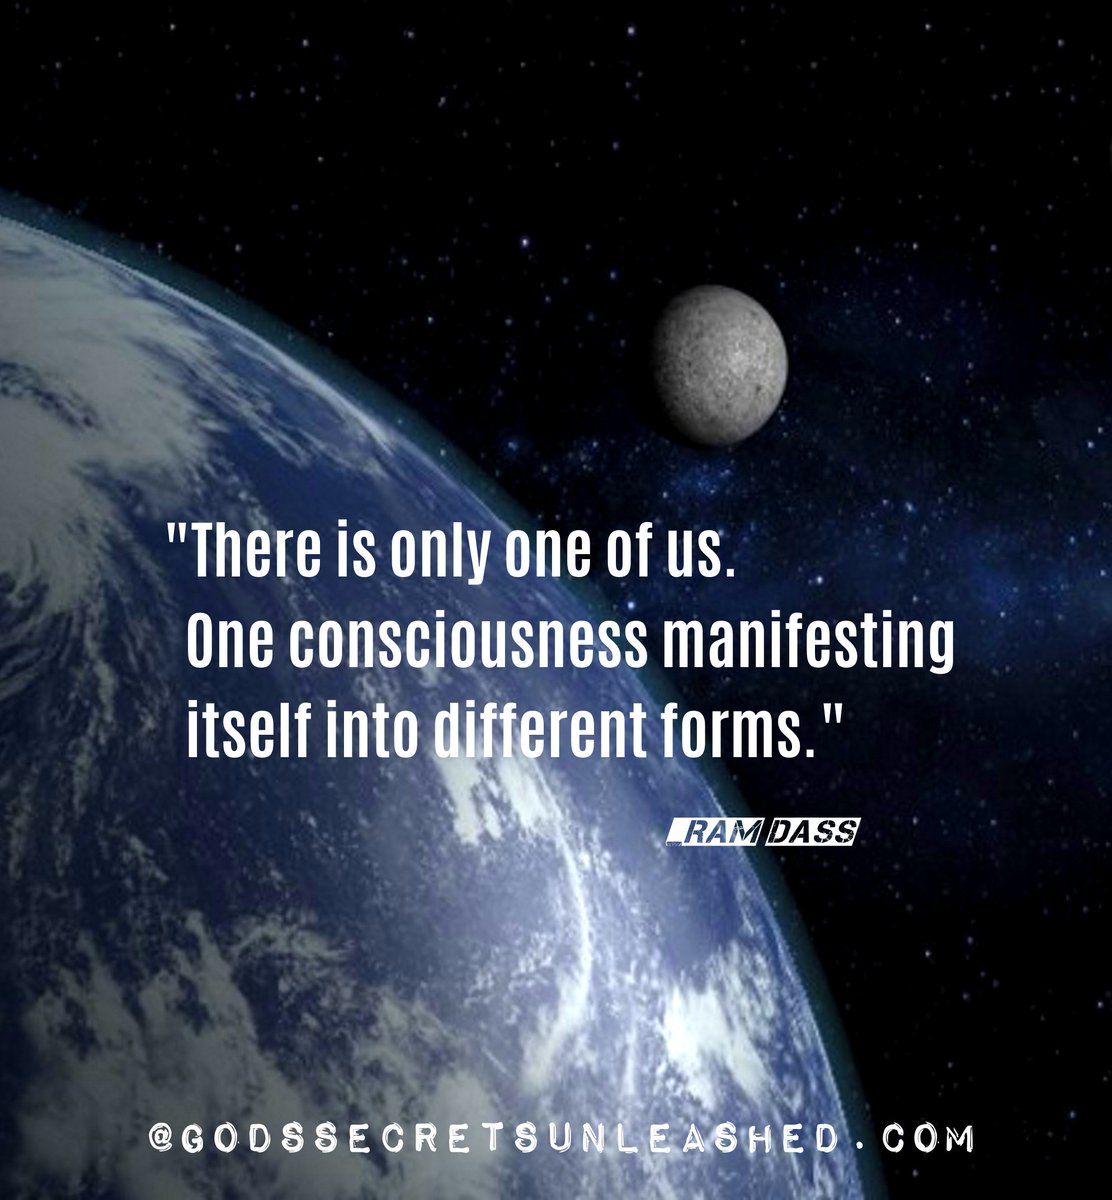 &quot;There is only one of us. One consciousness manifesting itself into different forms.&quot;_Ram Dass #universal #consciousness #Oneness #awareness #awakening #Love #Light #enlightenment #spirituality<br>http://pic.twitter.com/6Dz9Xt49WK